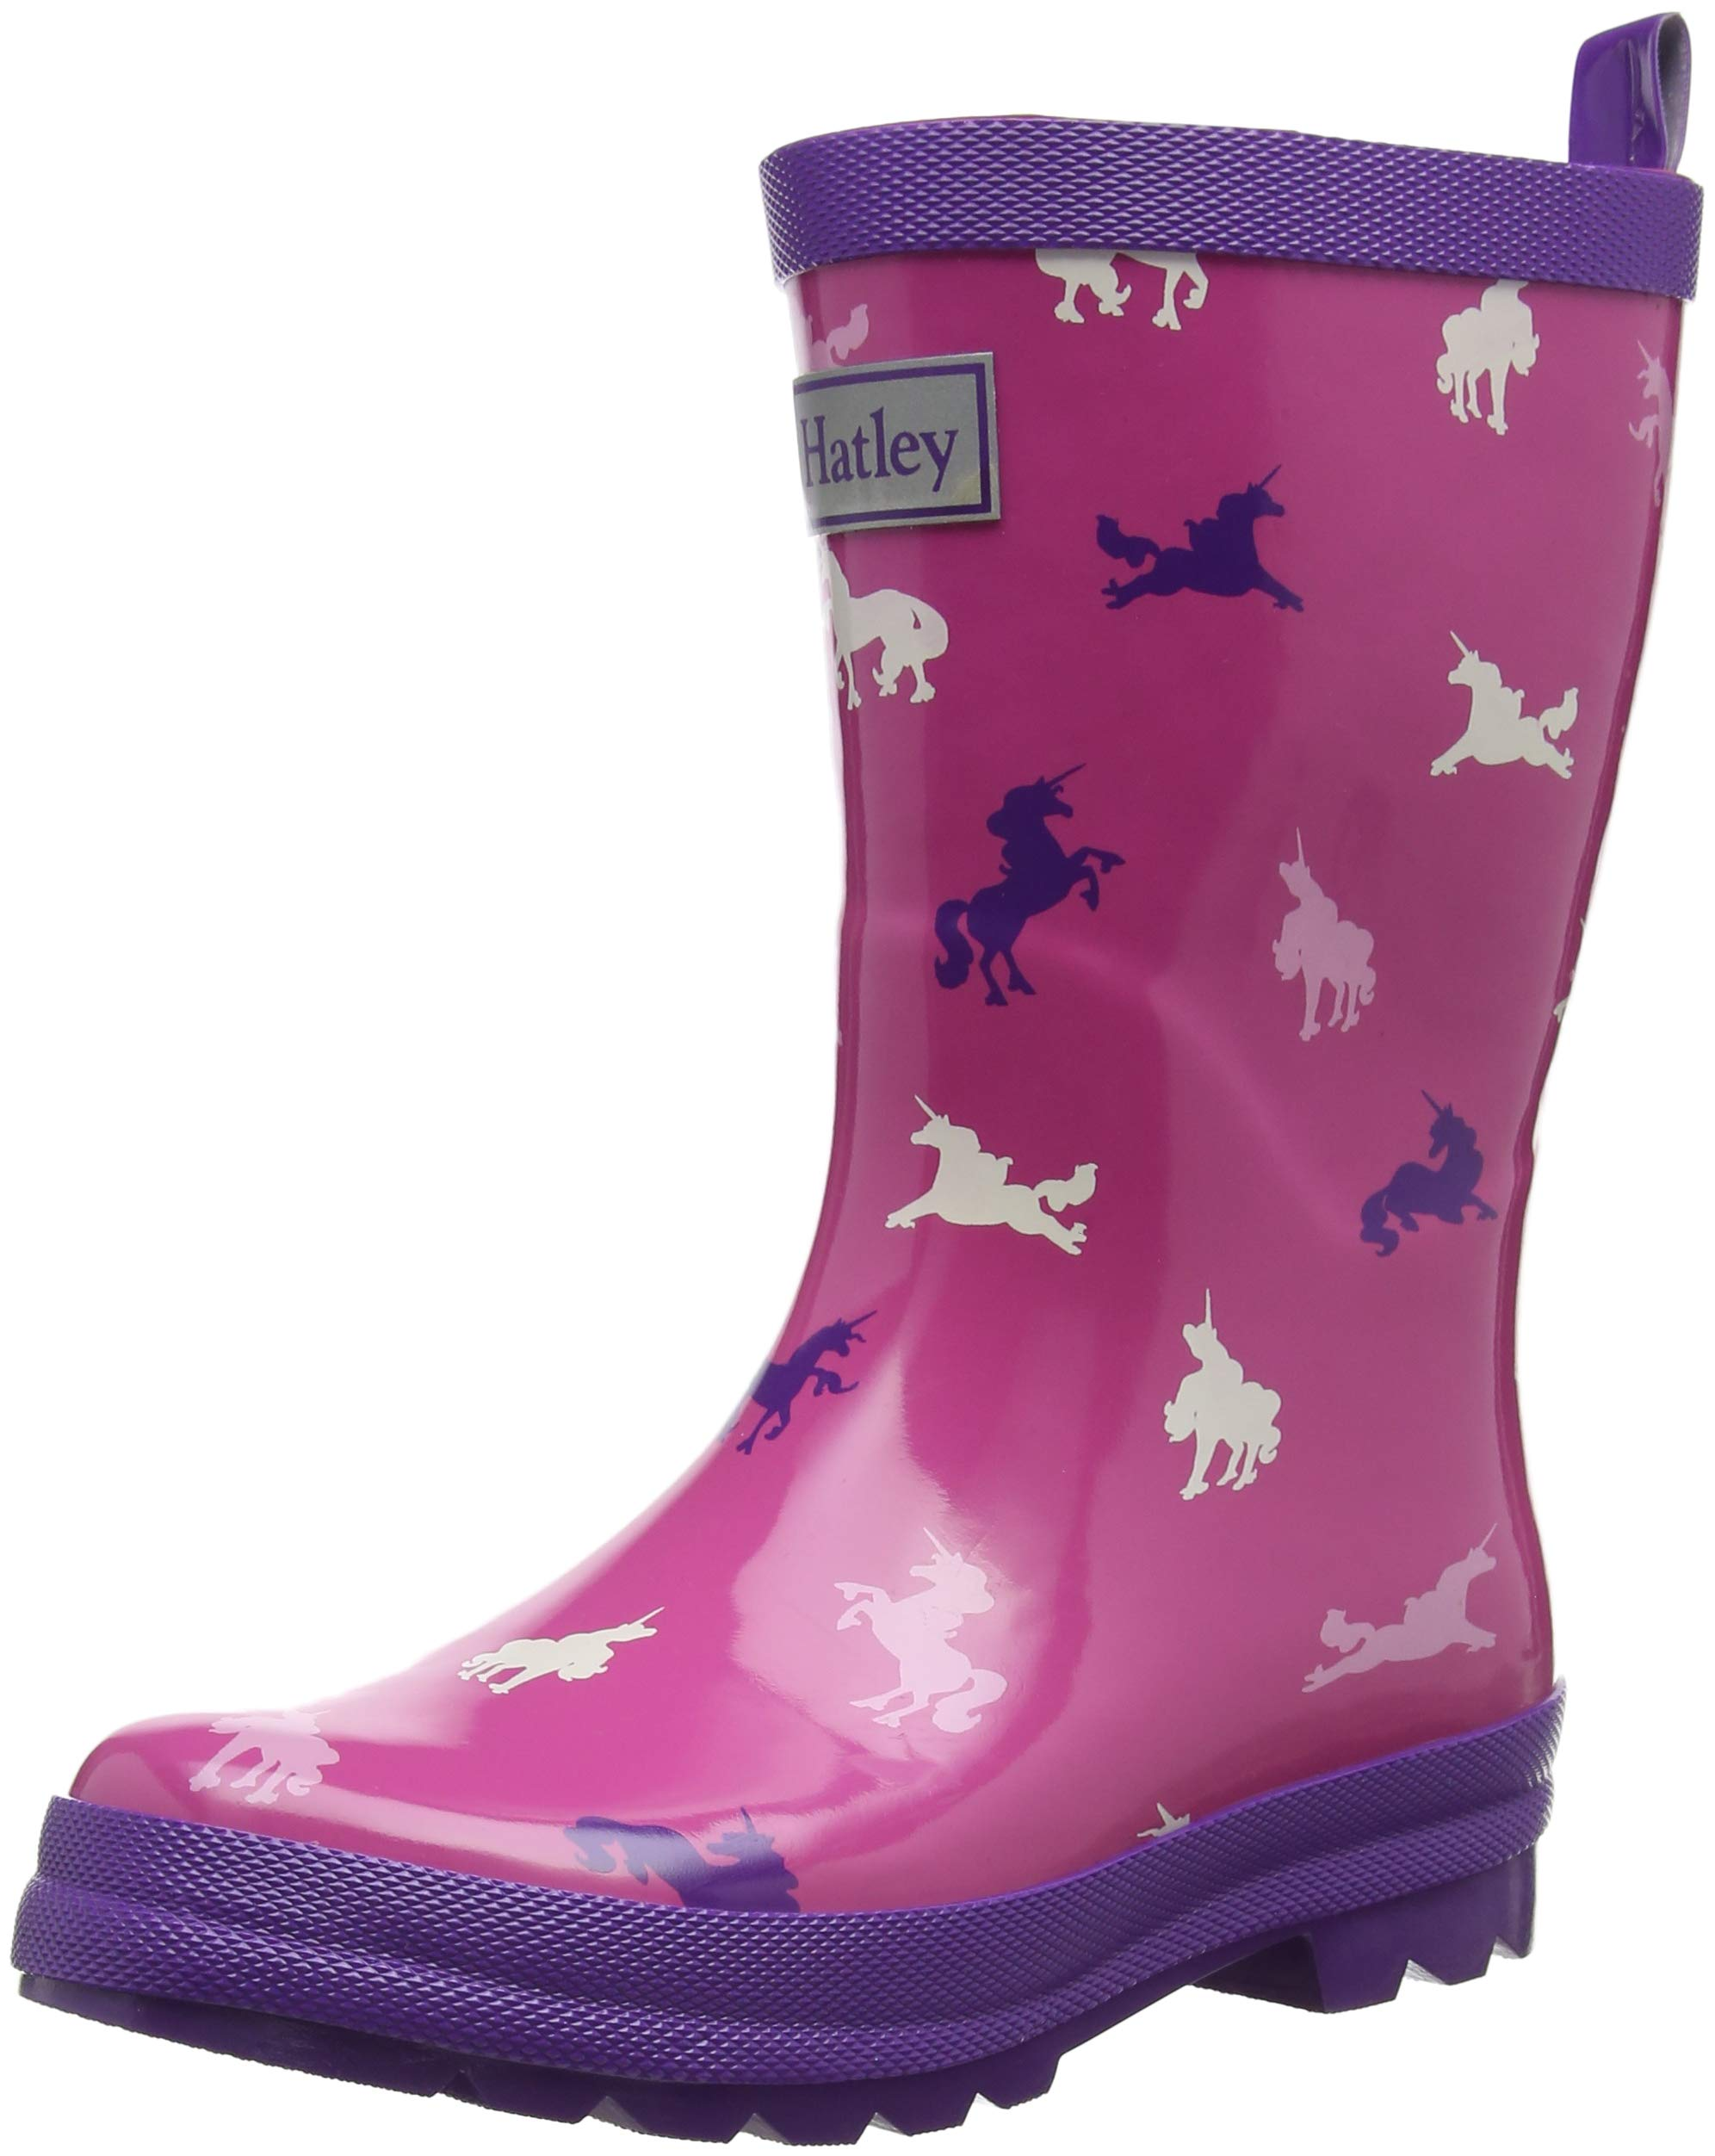 Hatley Girls' Printed Rain Boots, Unicorn Silhouettes, 8 M US Little Kid